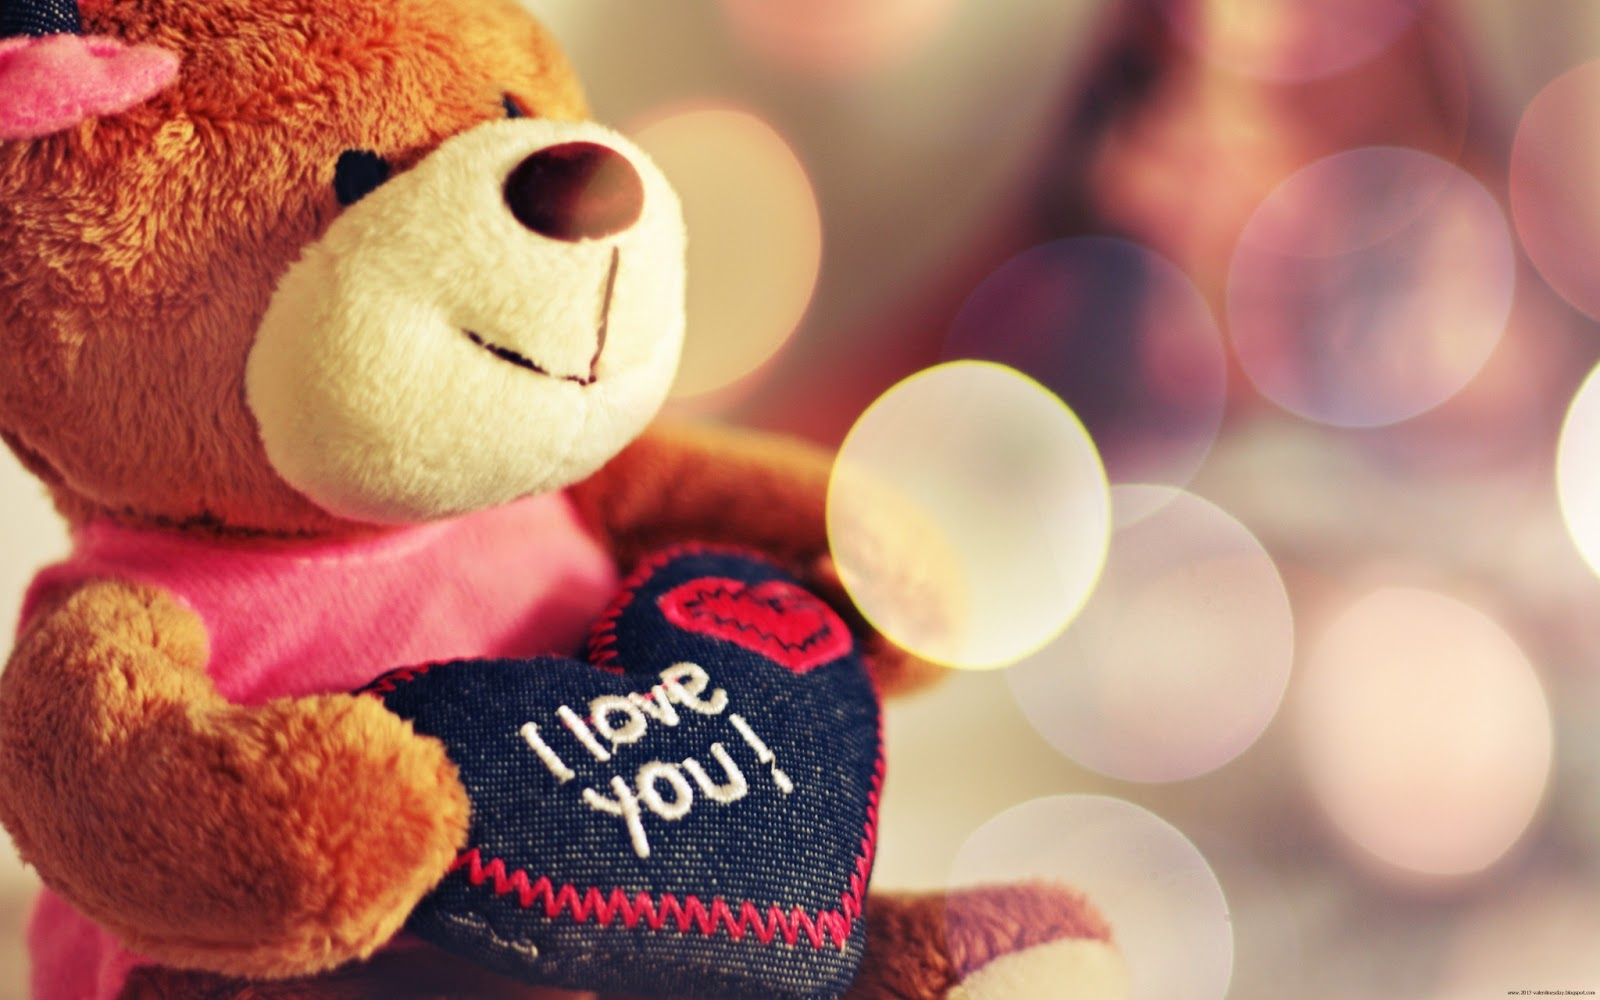 http://4.bp.blogspot.com/-QpKCTKw0Mu4/URB8nn46uLI/AAAAAAAADcg/3xR66gfKoPM/s1600/i_love_you_teddy_bear-HD_wallpaper.jpg